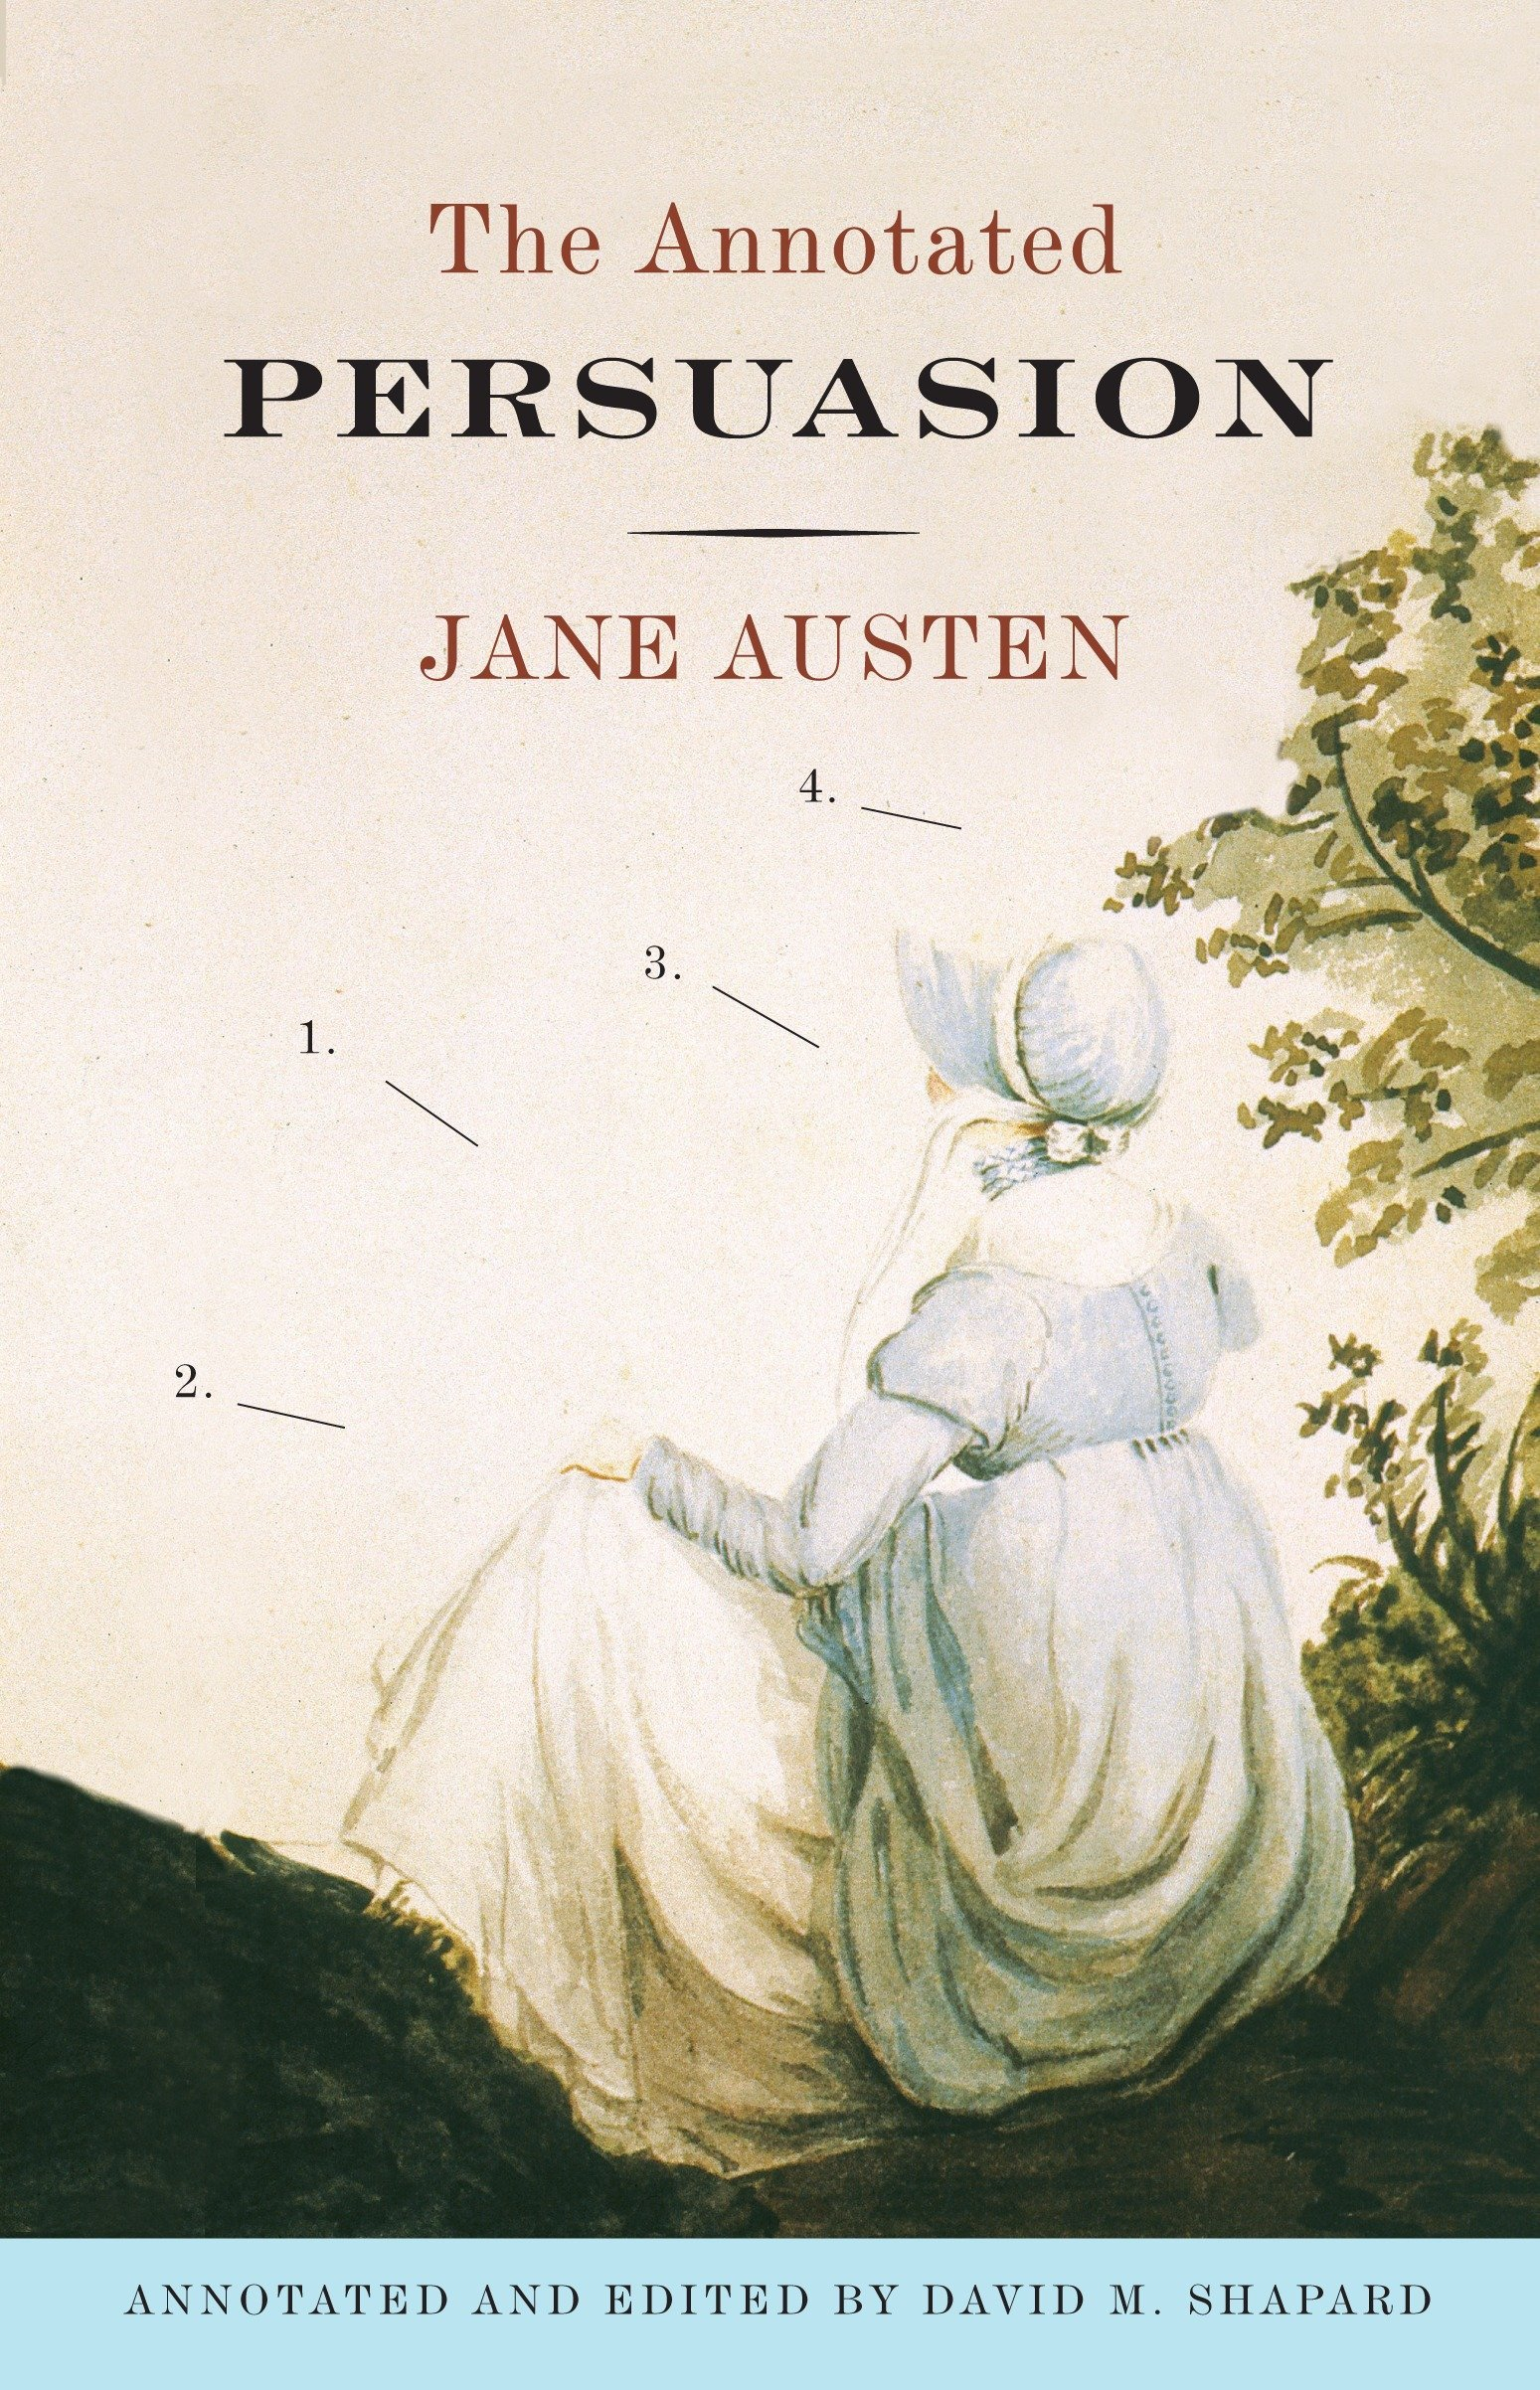 A personal analysis of persuasion a novel by jane austen